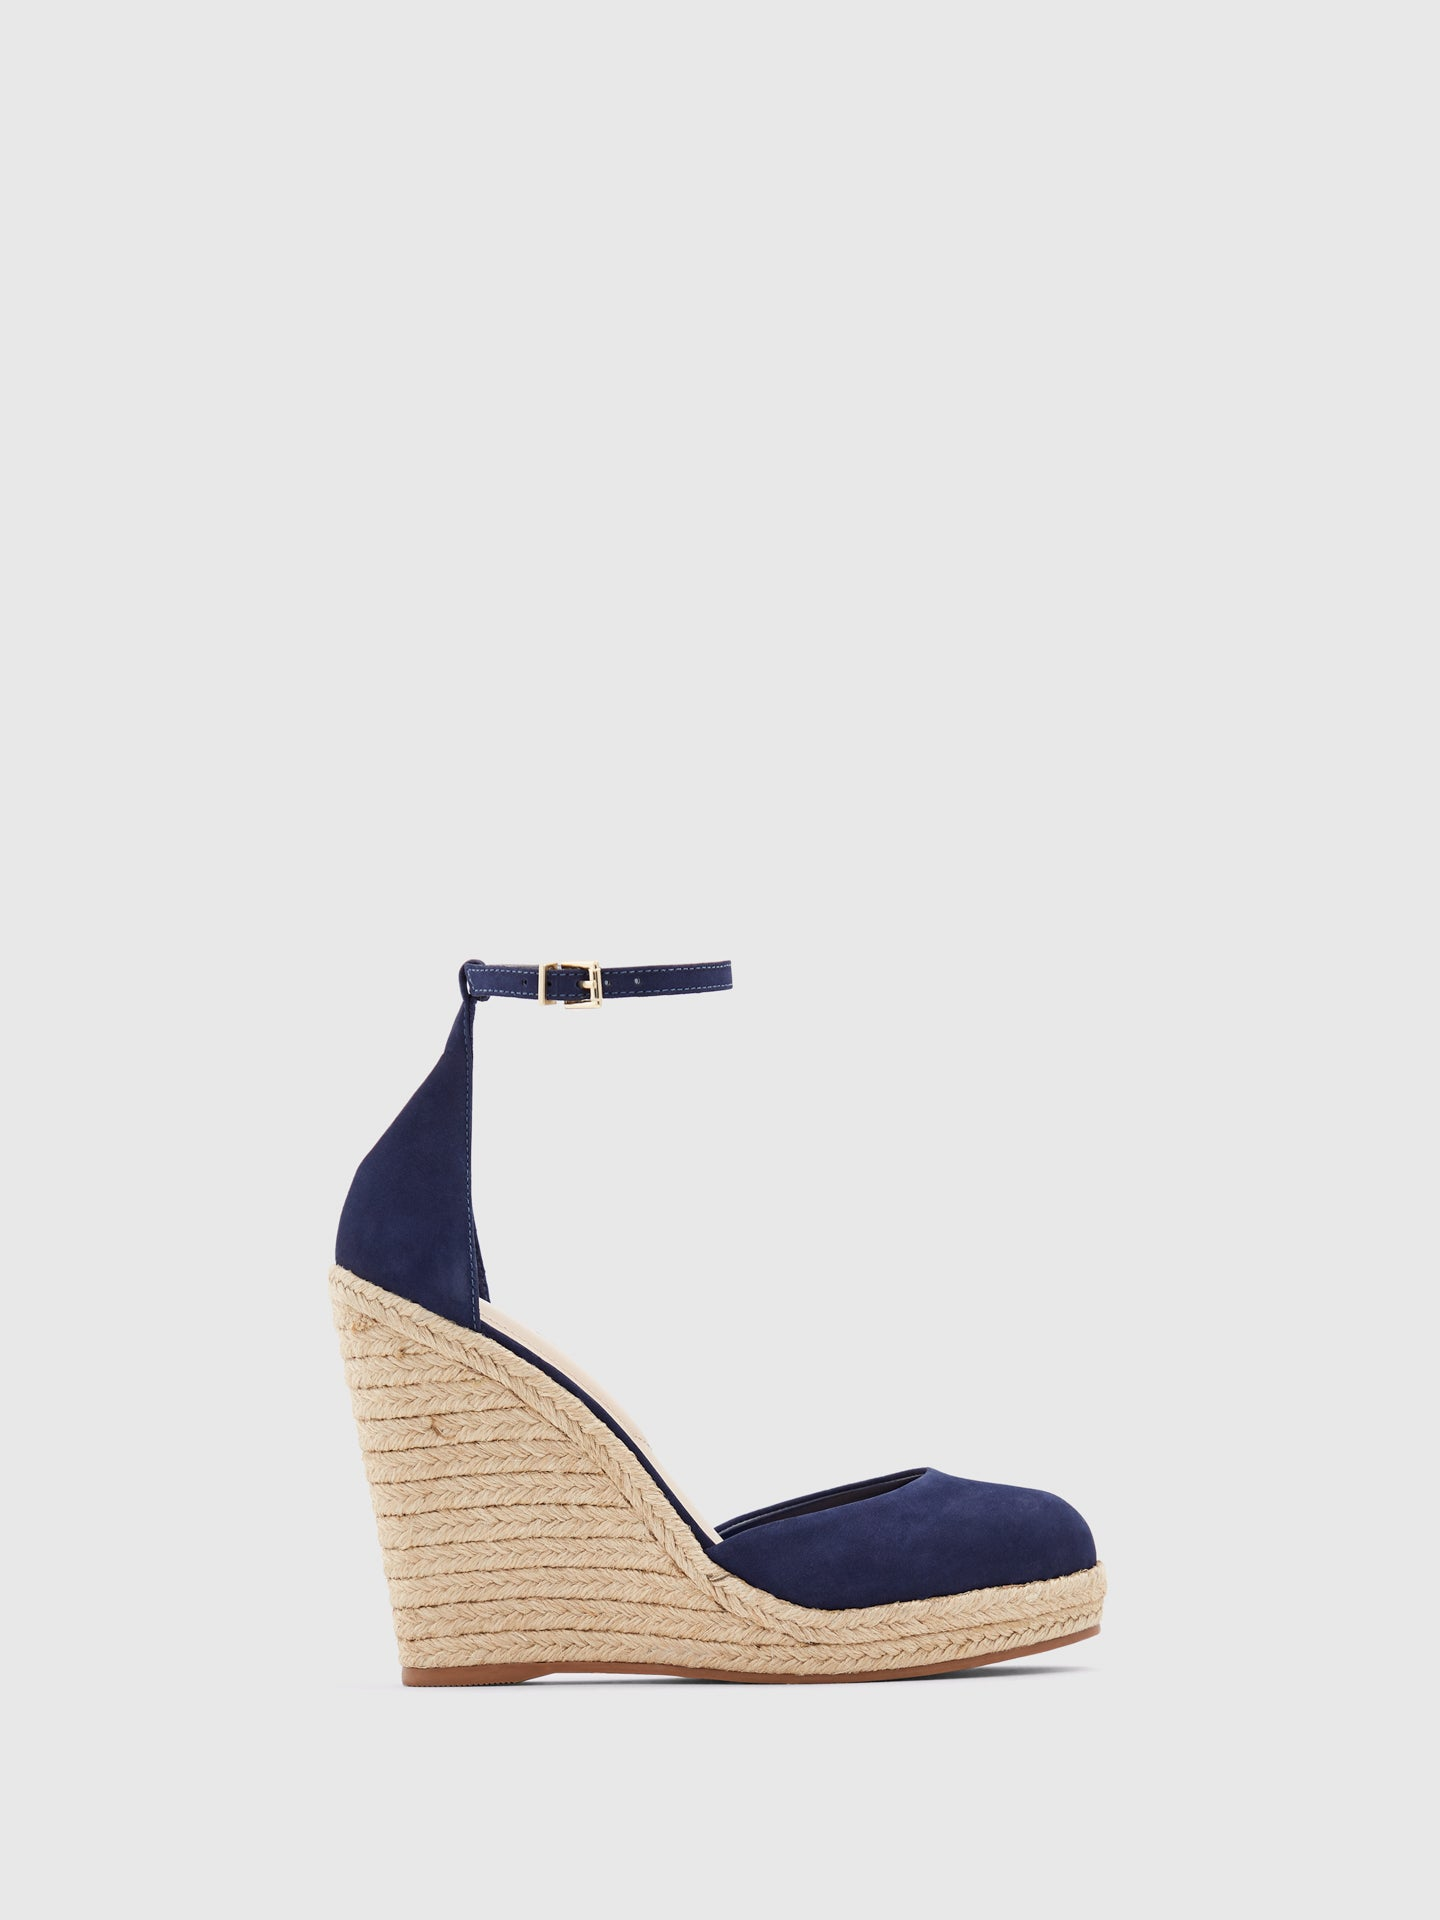 Aldo Blue Wedge Espadrilles